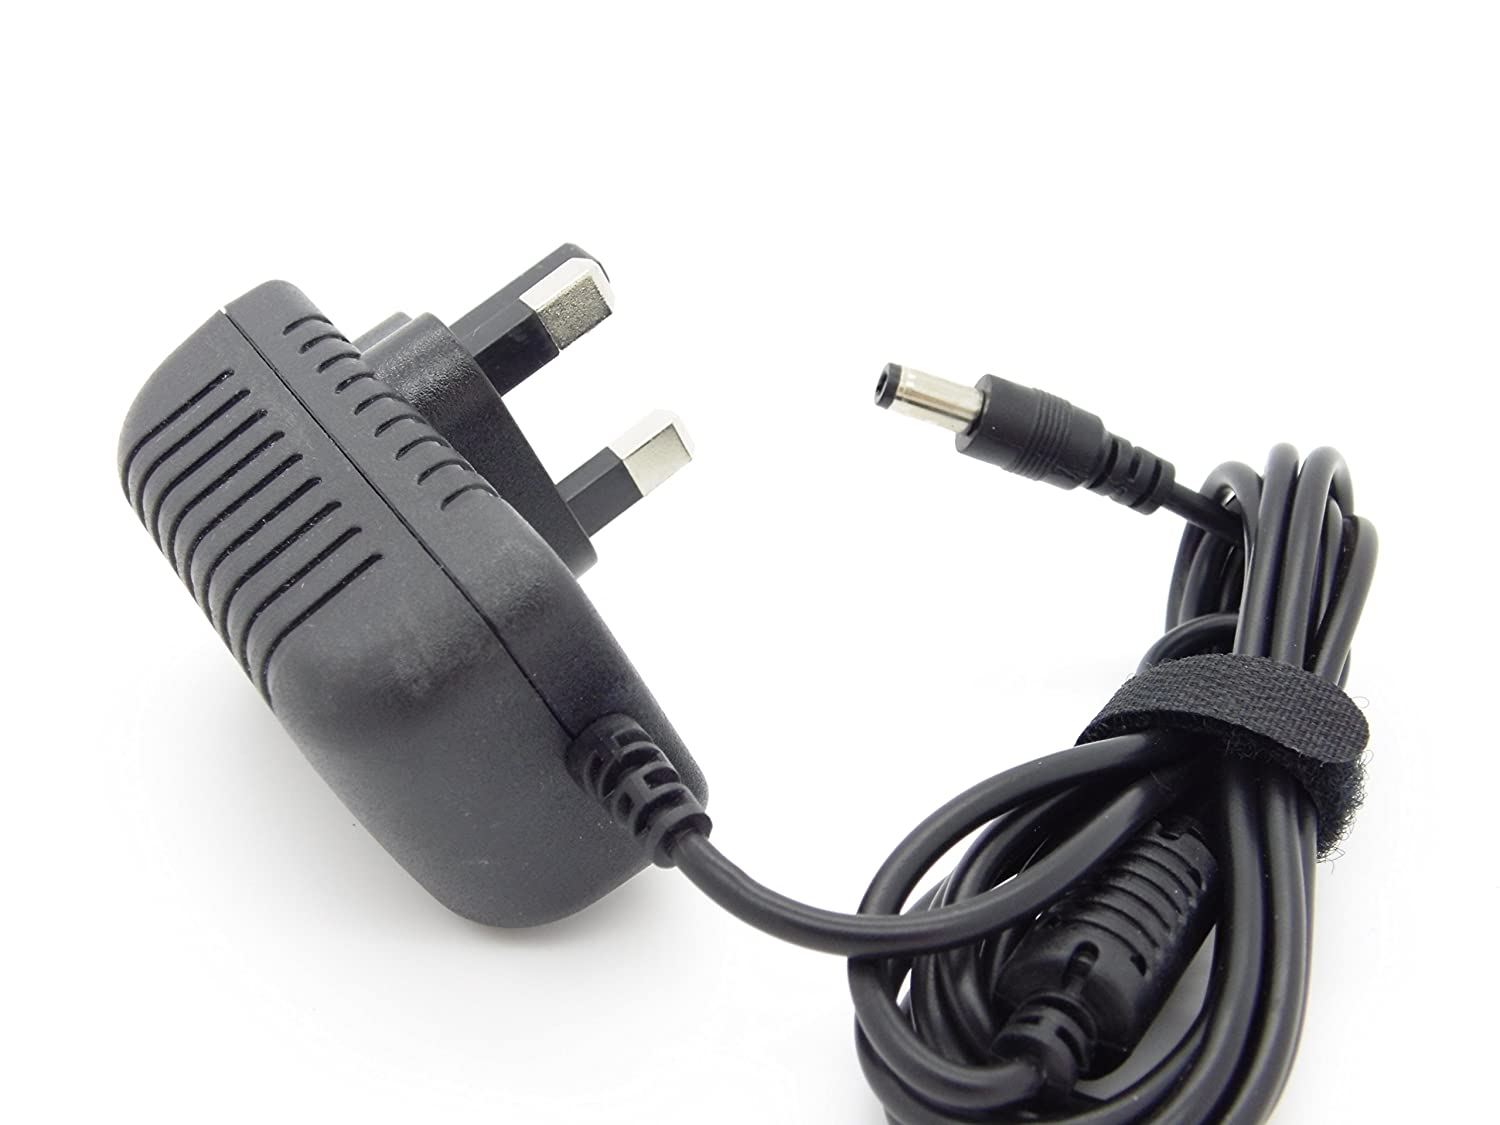 GOOD LEAD 6V 1000mA 1A Replacement S006MB0600100 AC DC Adapter Power Supply Charger